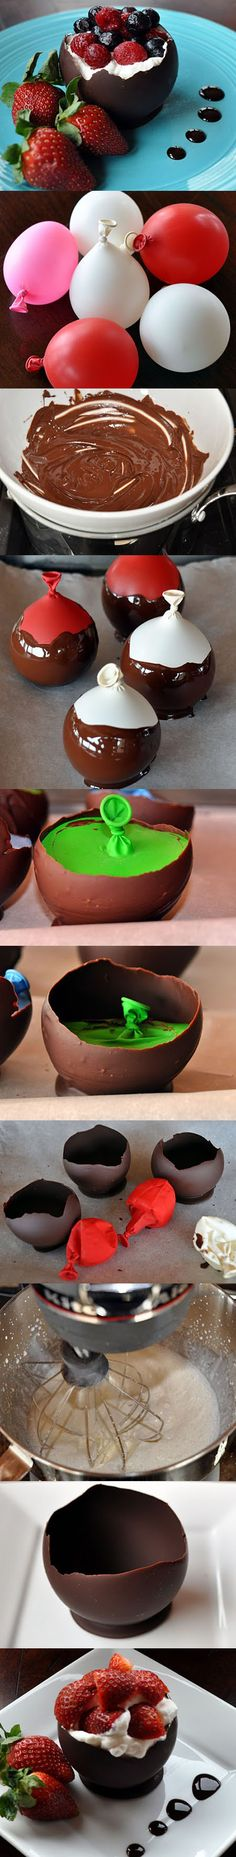 Chocolate Bowls made with balloons dipped in chocolate and deflated when chocolate has cooled * sweet!